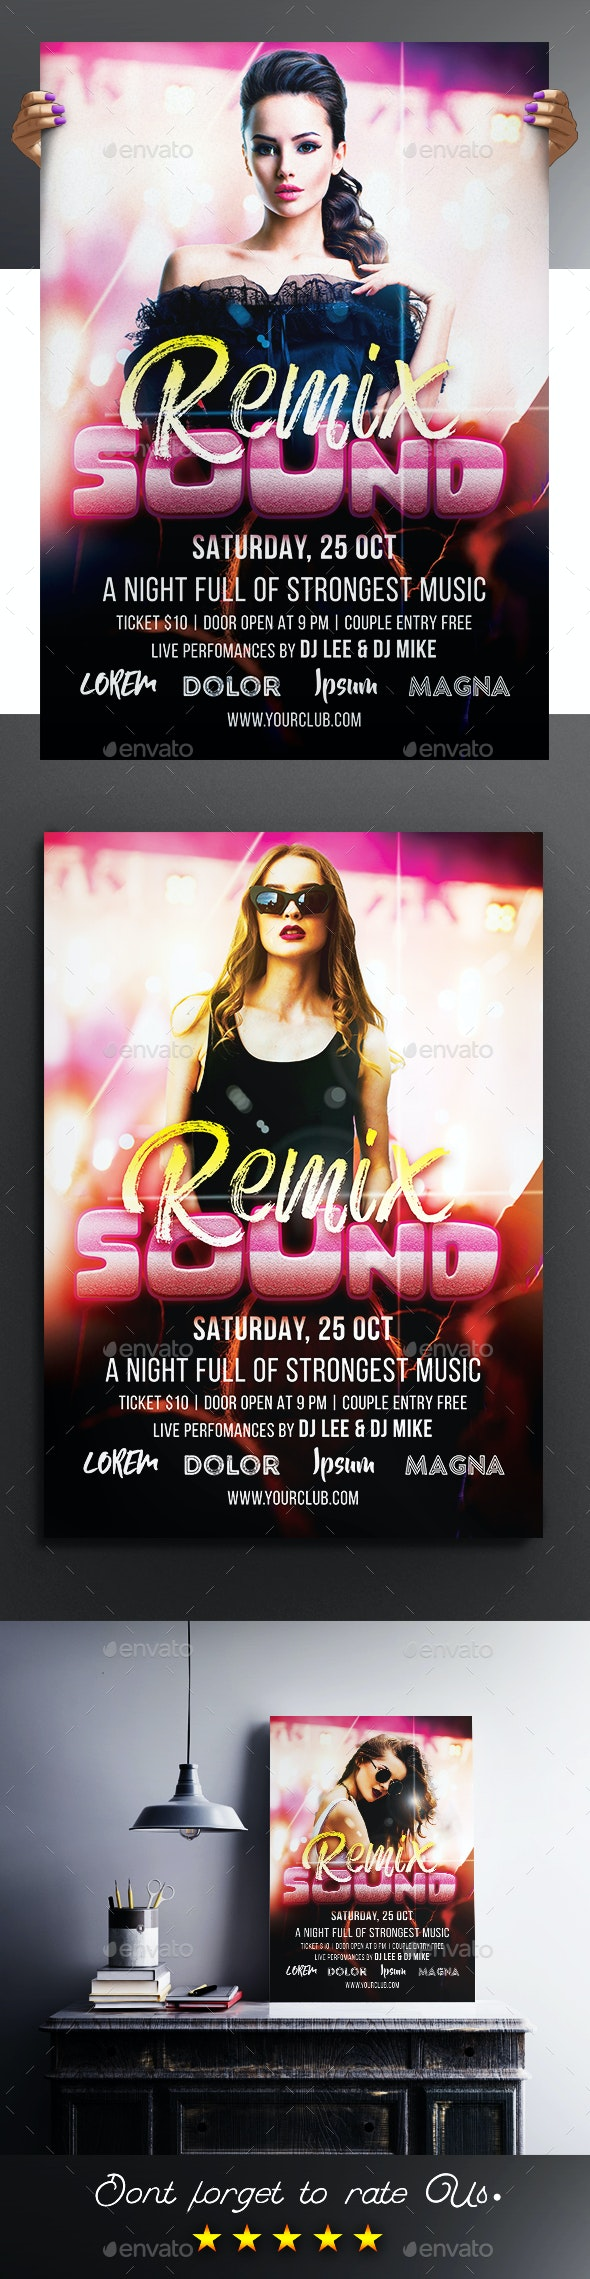 Remix Sound Party Flyer / Poster - Clubs & Parties Events